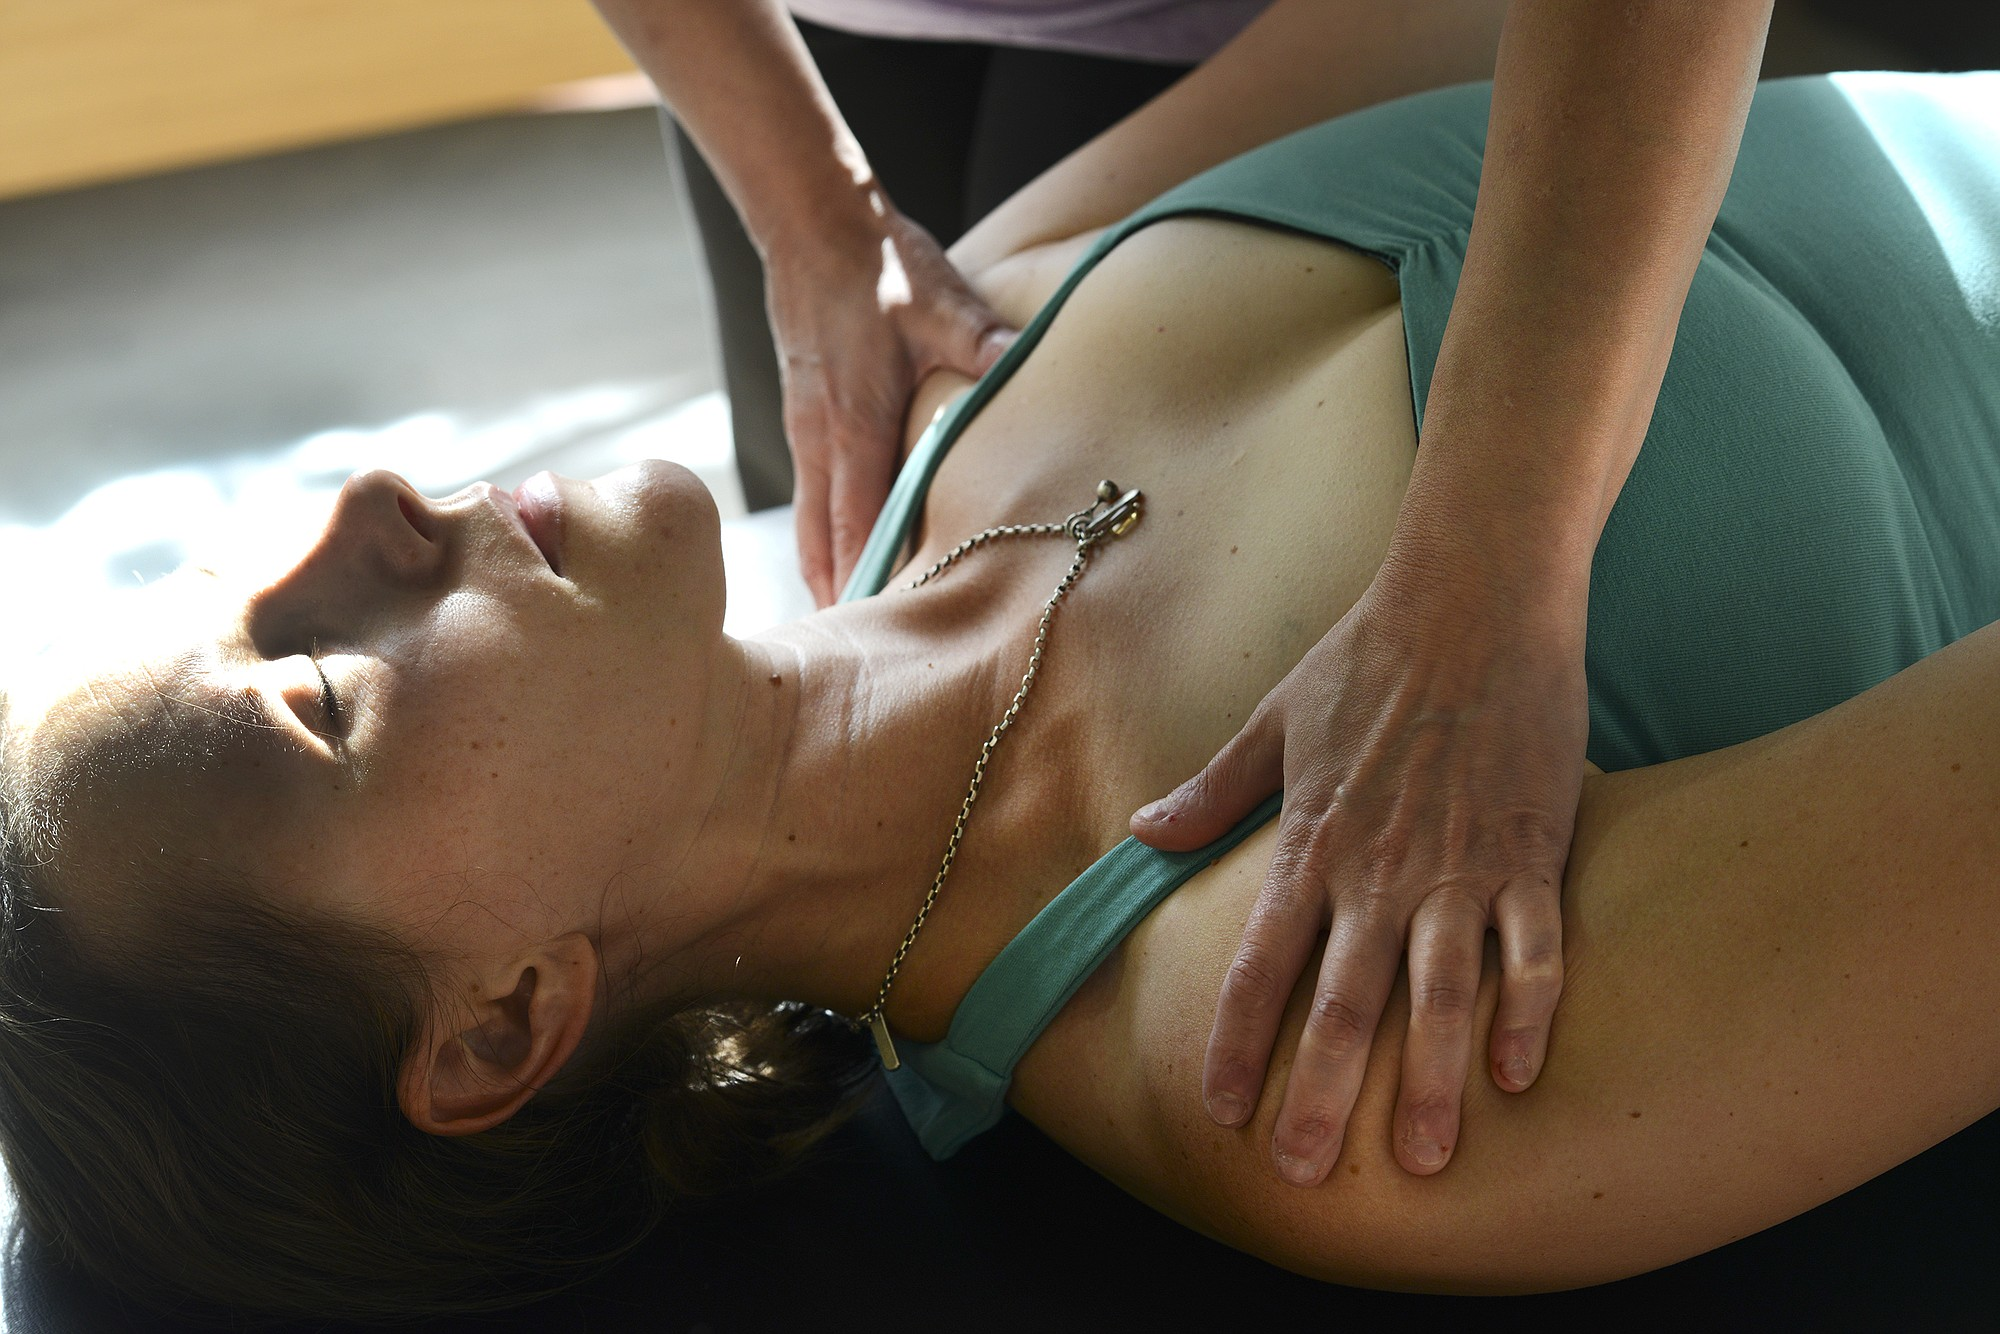 Ariane Kunze/The Columbian Jessica Schultz receives Pilates instruction from Laura Kotsovos of Camas at the Jessica Schultz Pilates studio in Portland. Kotsovos' Pilates certification requires 600 hours of teaching and observation, as well as several written and technique tests.